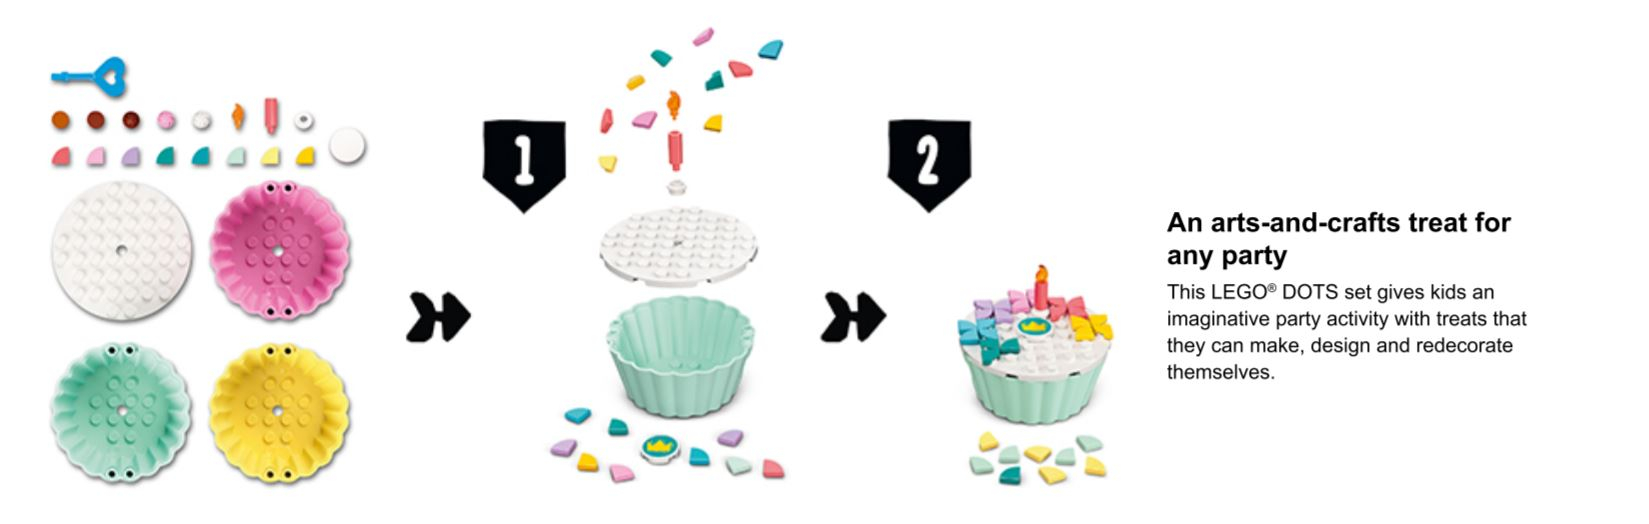 lego dots party kit